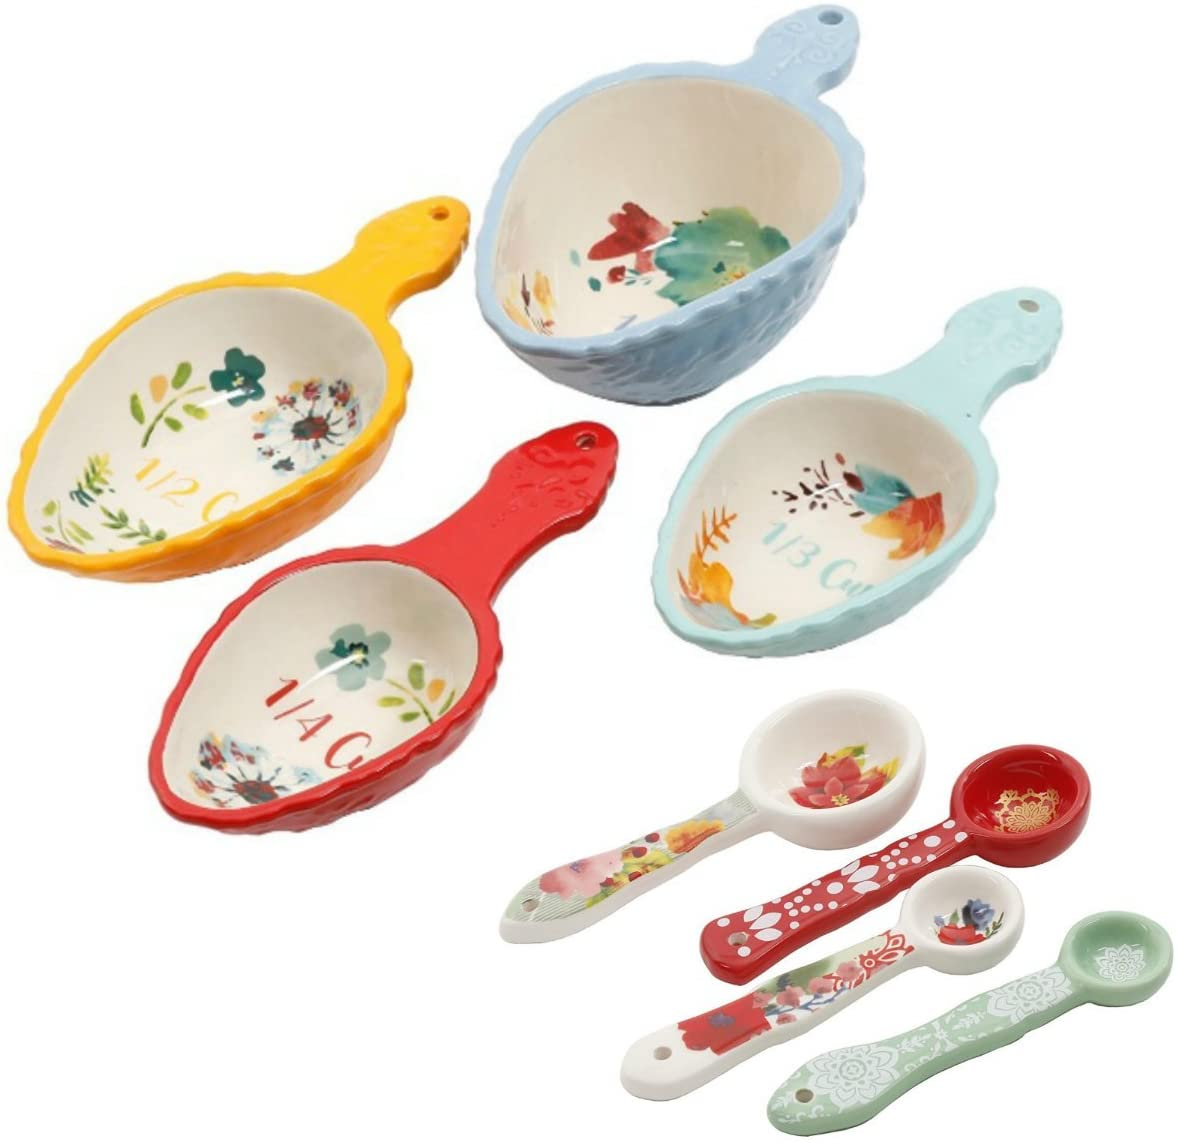 The Pioneer Woman 8 Piece Set - 4 Willow Measuring Scoops and 4 Winter Bouquet Measuring Spoons Ceramic Floral